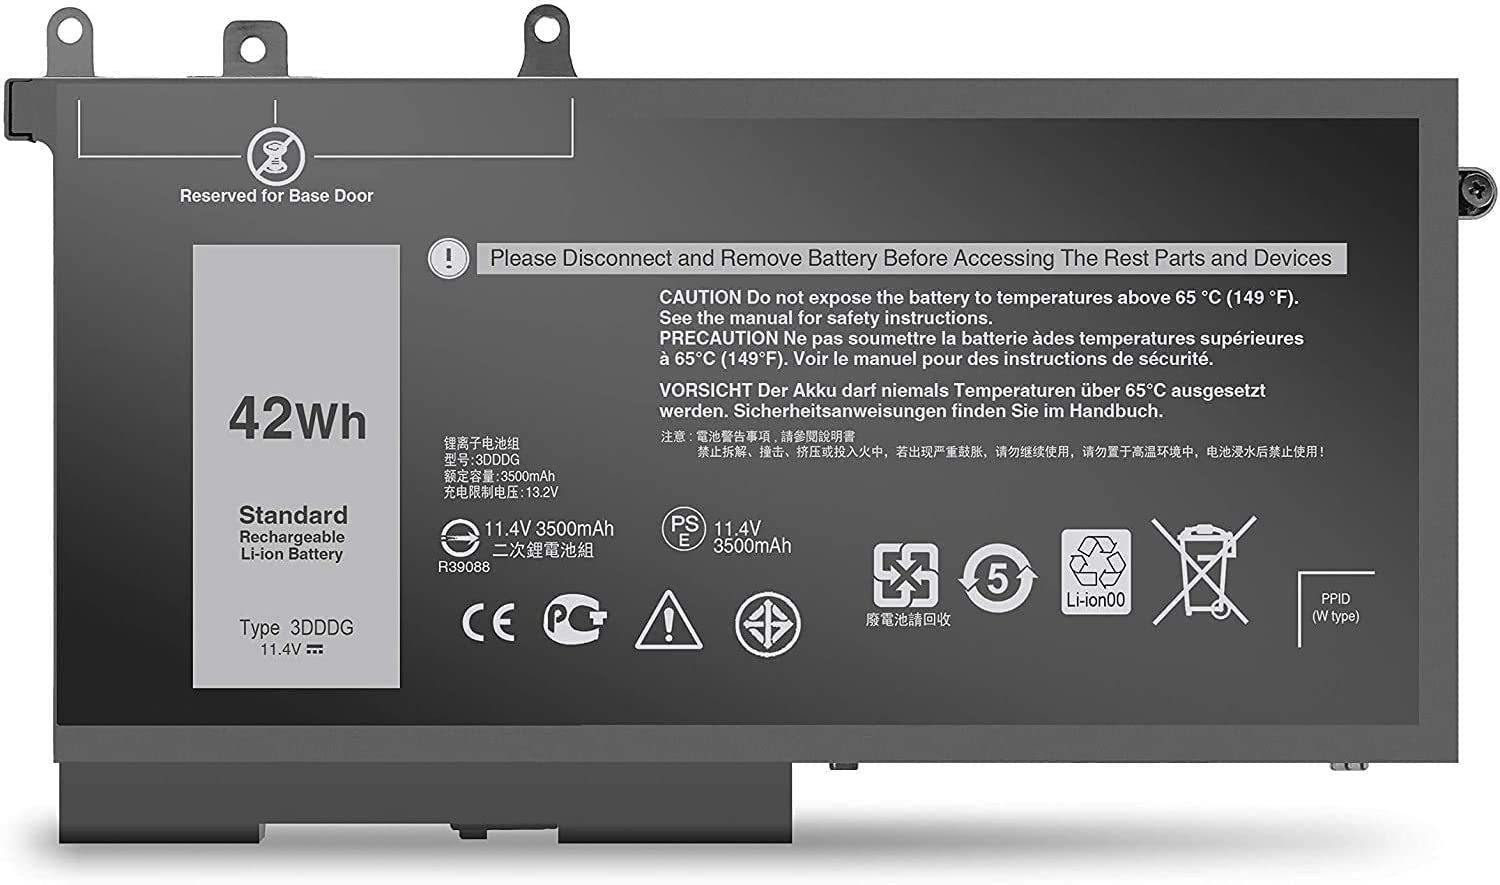 Fully 3DDDG Replacement Battery Compatible with Dell Latitude E5280 E5480 E5580 5280 5288 5290 5480 5488 5490 5491 5495 5580 5590 Precision 3520 3530 Series 049XH 45N3J 3VC9Y RRJDX - 11.4V 42Wh